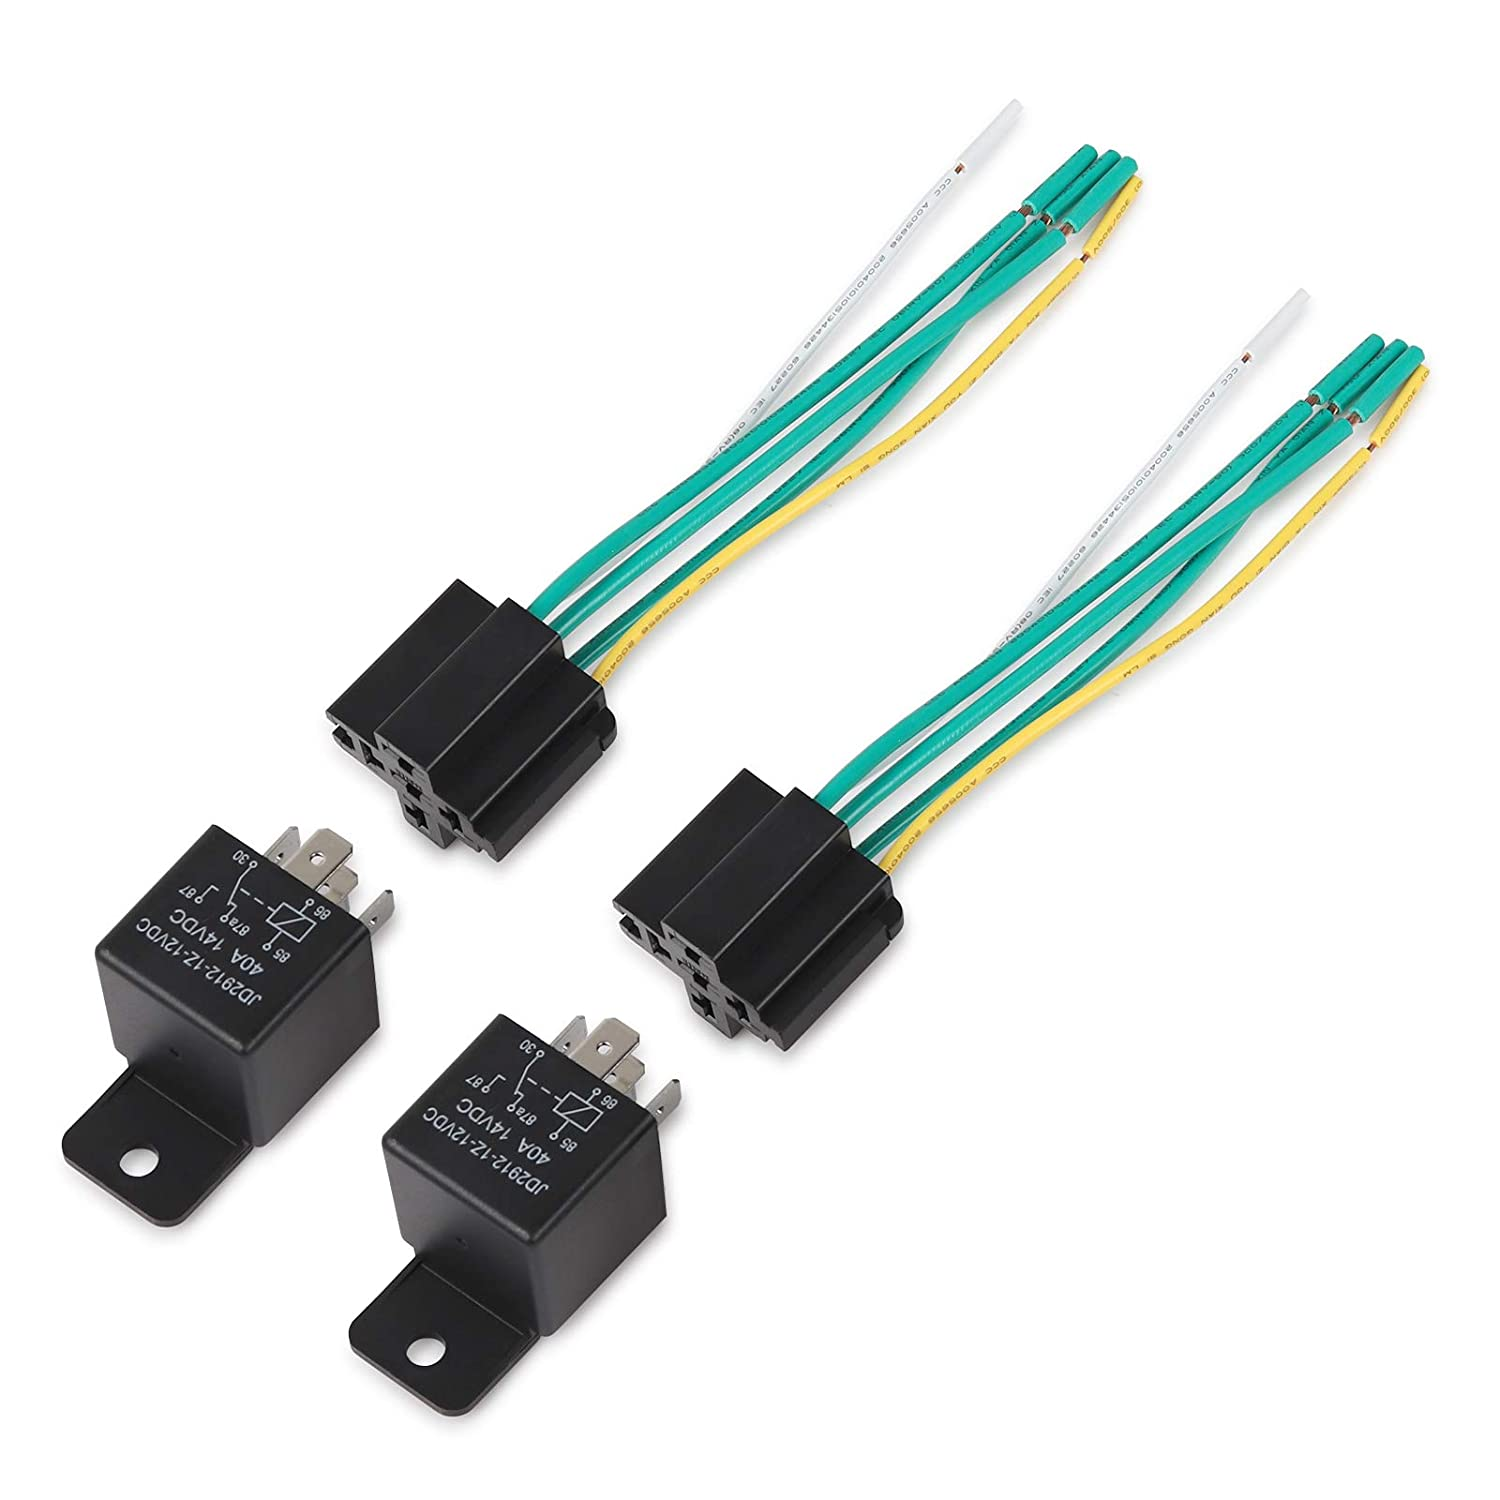 Ehdis/® Car Truck Relay Socket Harness kit 5 Pin 5 Pre-wired 24V 40 Amp SPDT Bosch Style Automotive Motor Relay Contactor Switches Power Pack of 5